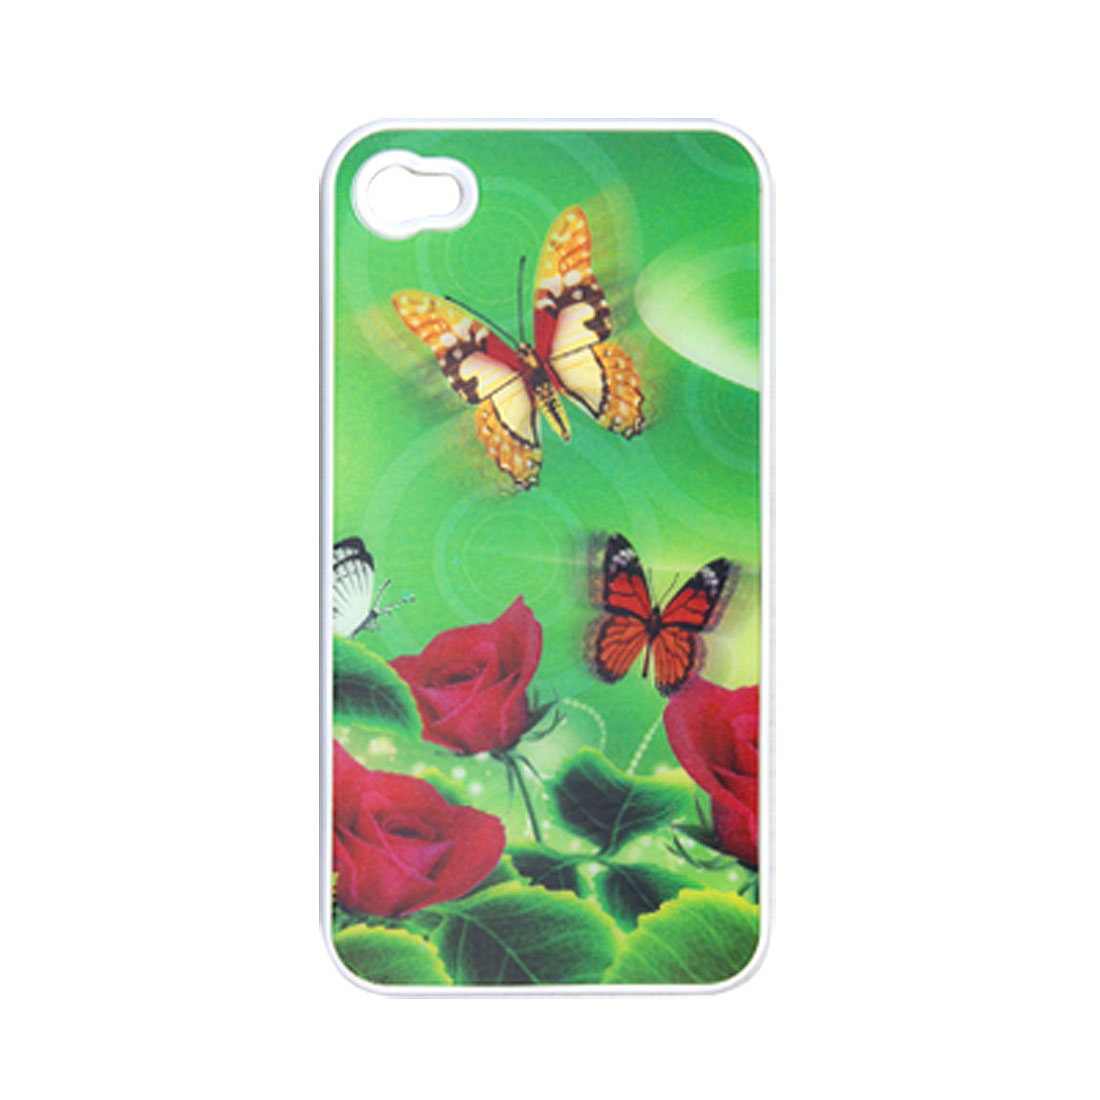 Plastic Butterfly 3D Colorful Back Case for iPhone 4 4G